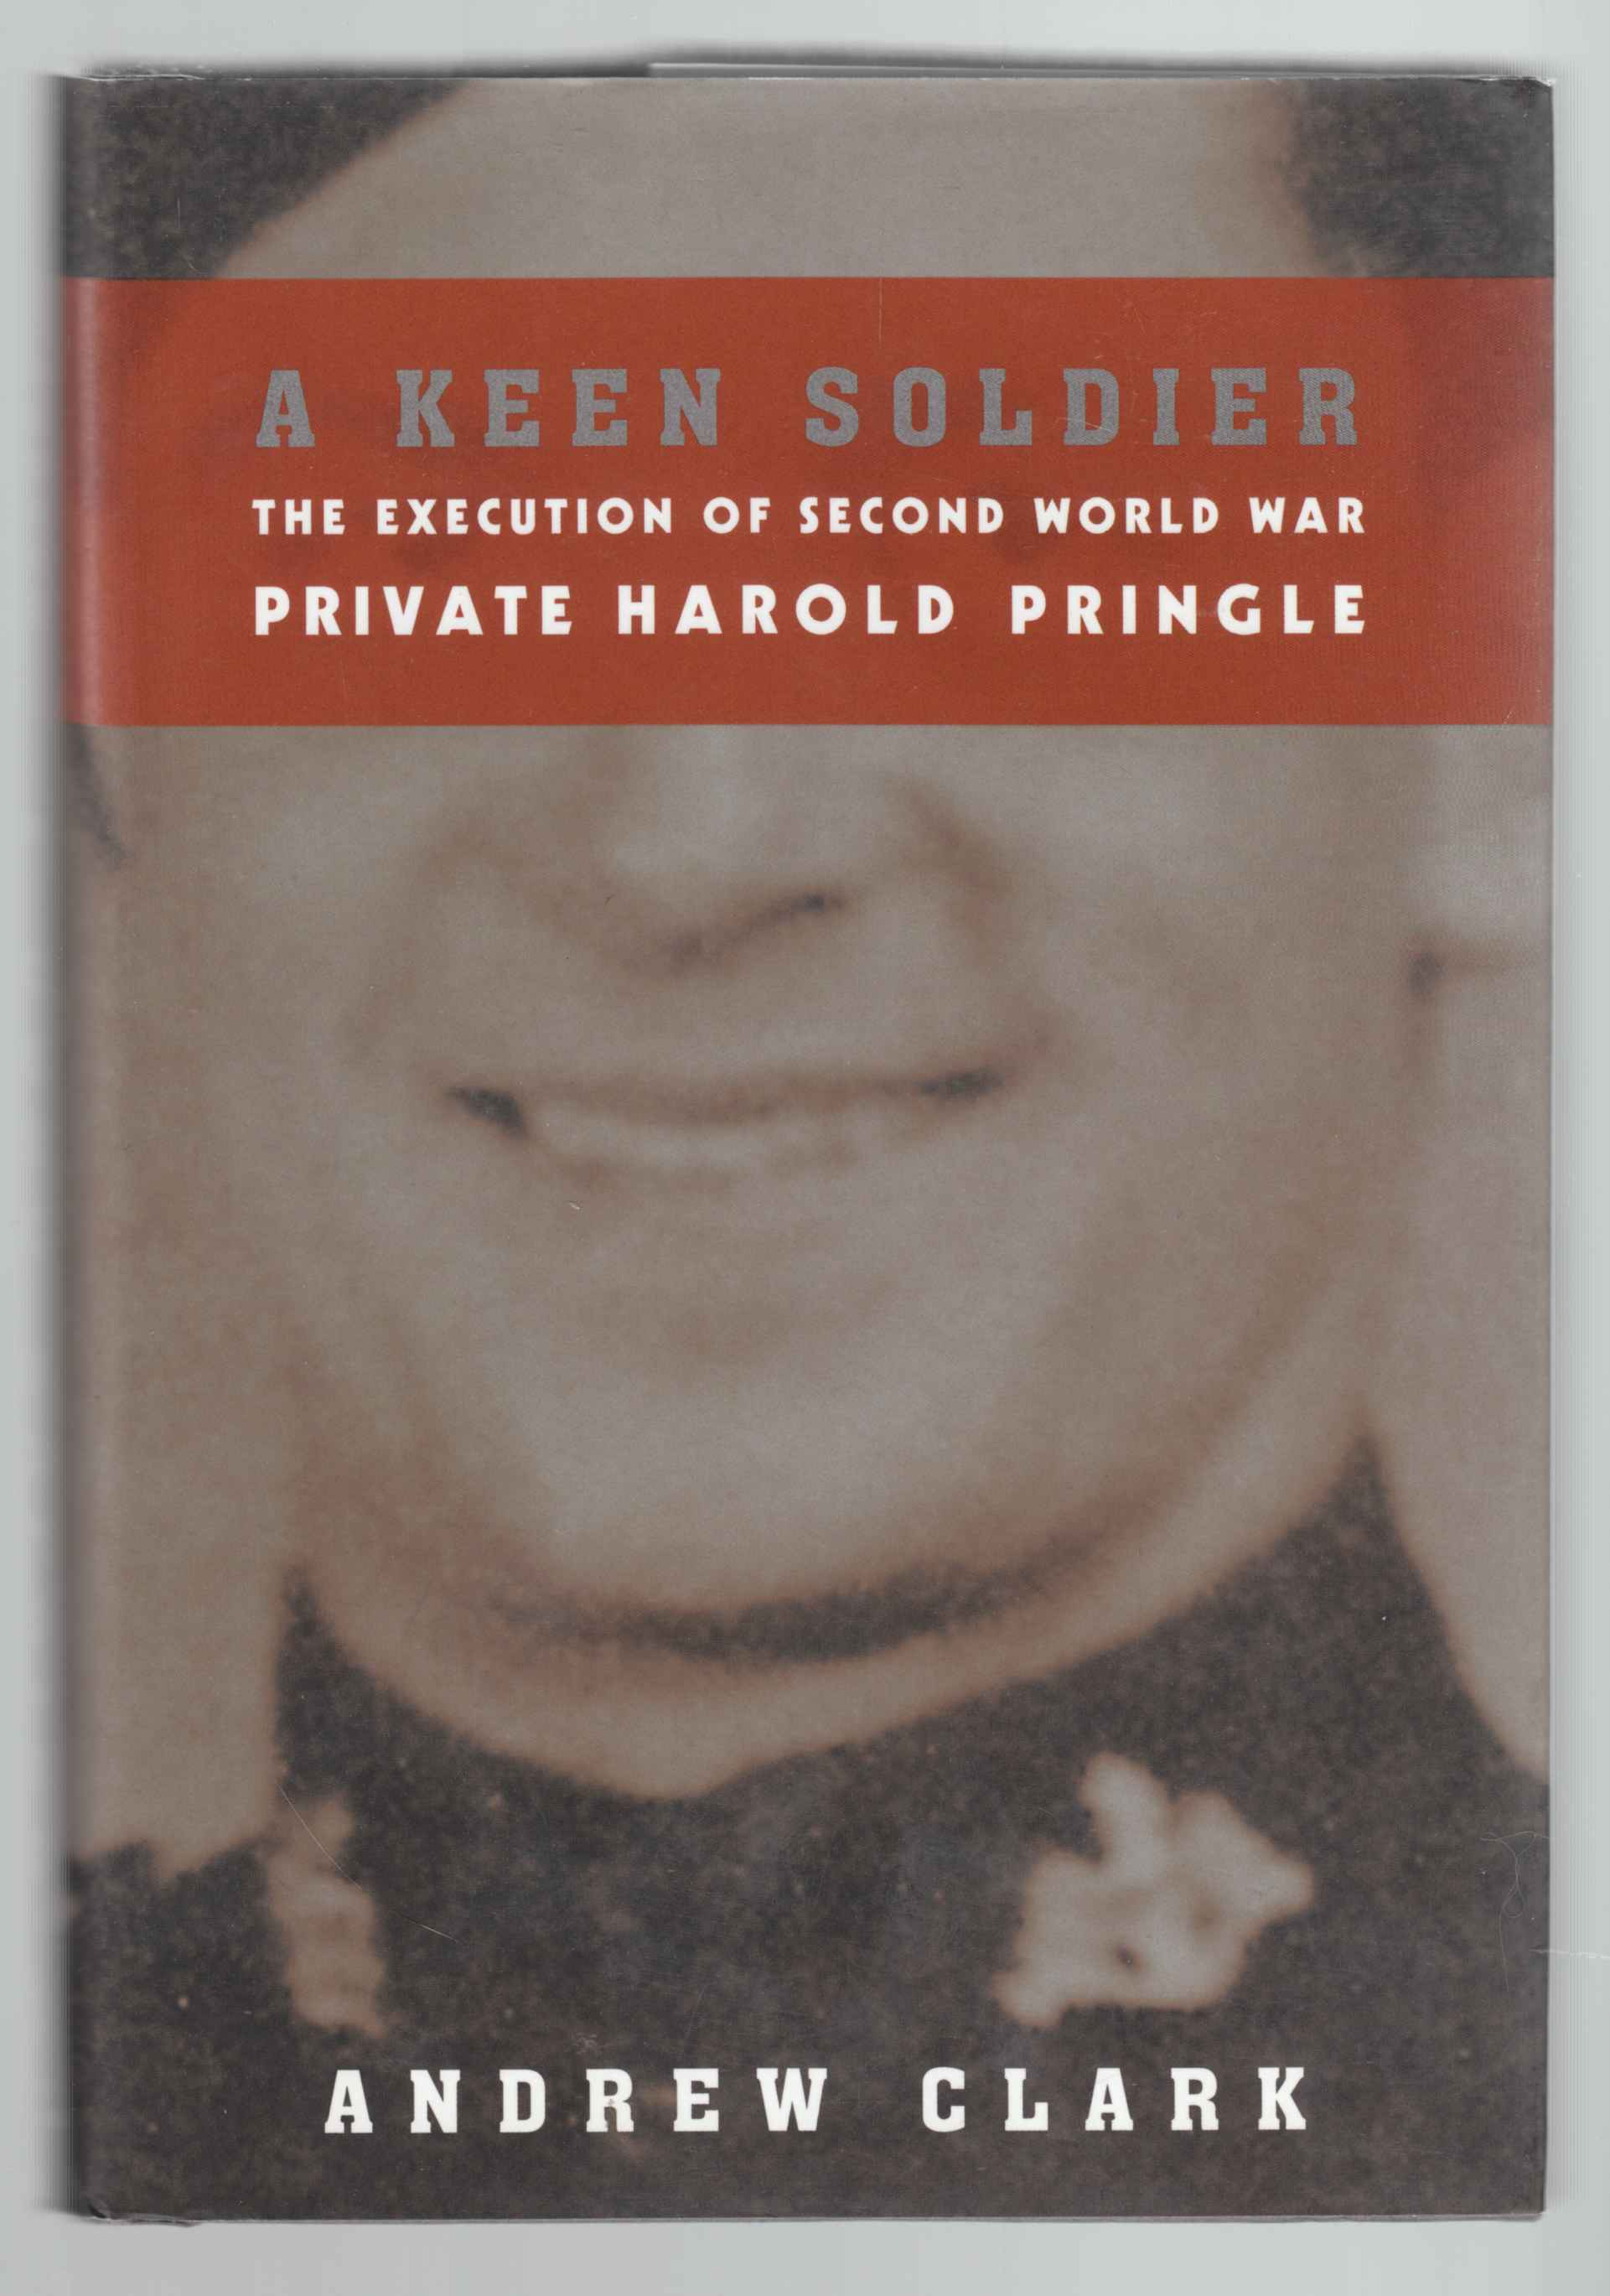 Image for A Keen Soldier The Execution of Second World War Private Harold Prince